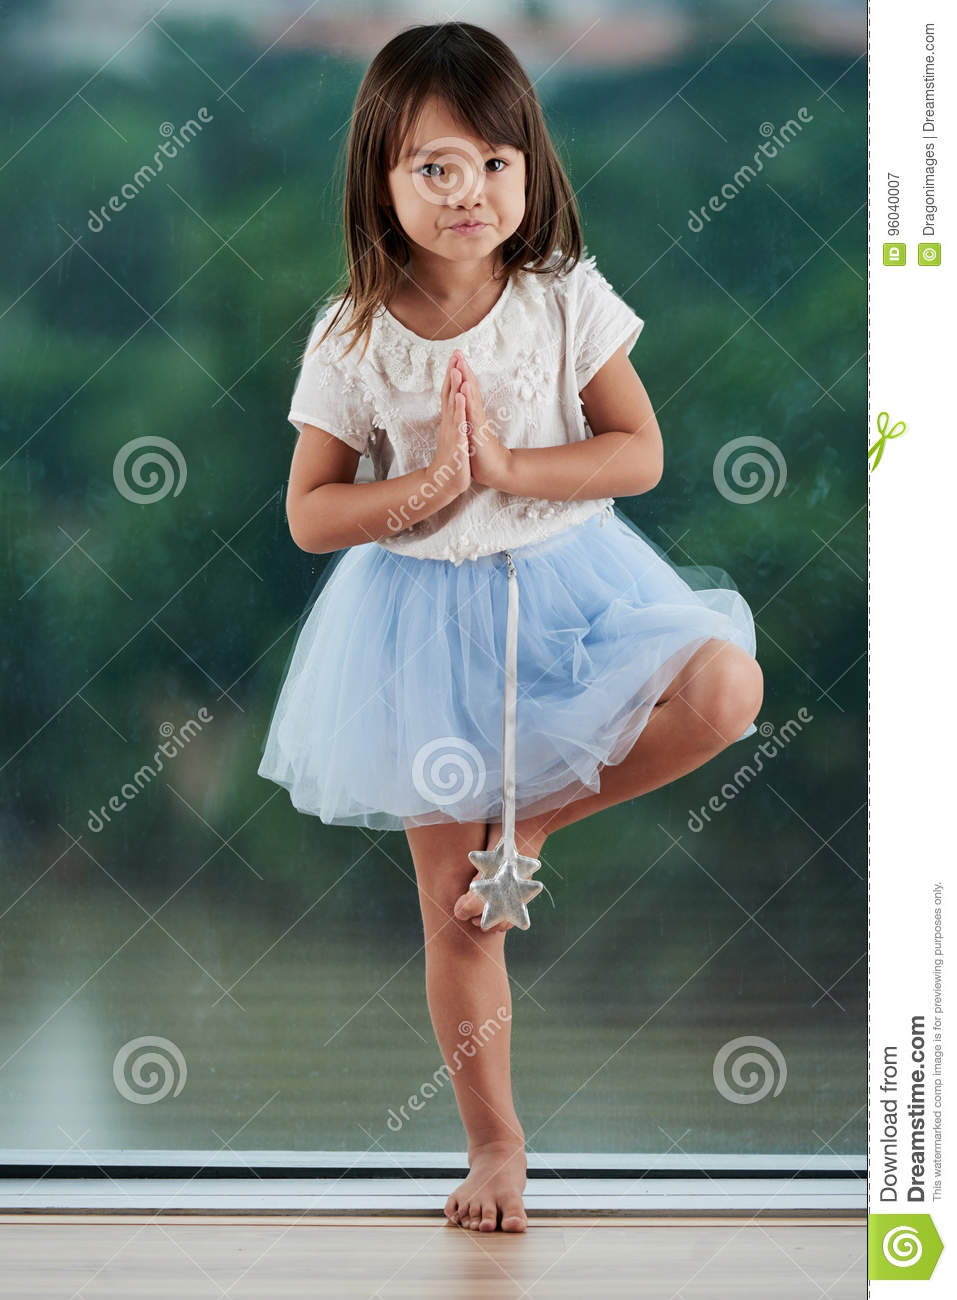 a0346acbd Portrait Of Skillful Little Ballerina Stock Image - Image of ...